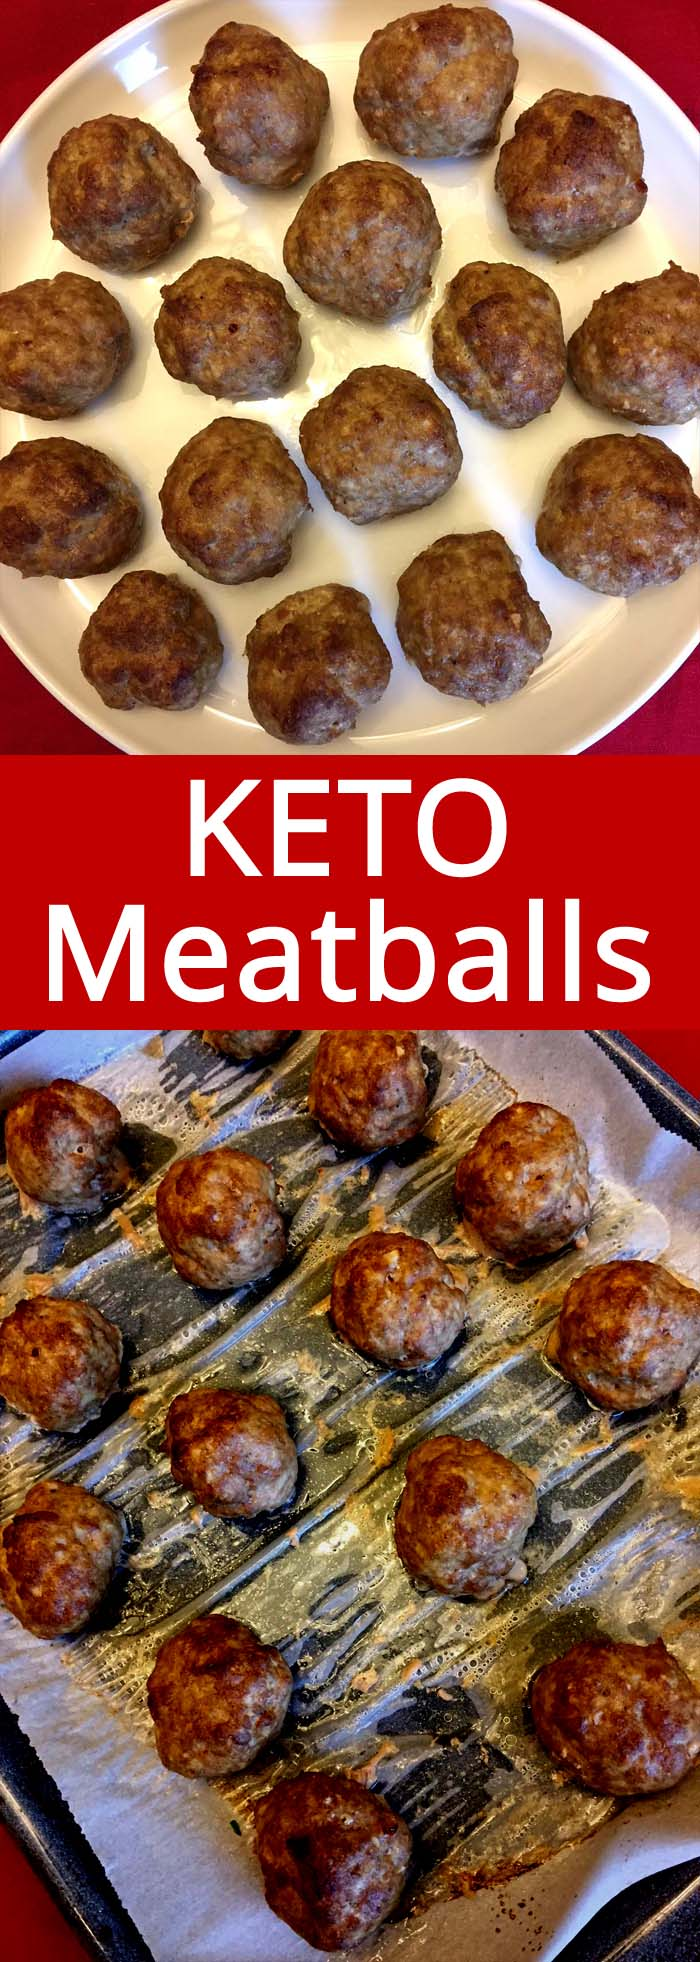 These baked keto meatballs are the best keto meatballs ever! I make a huge batch for meal prep!